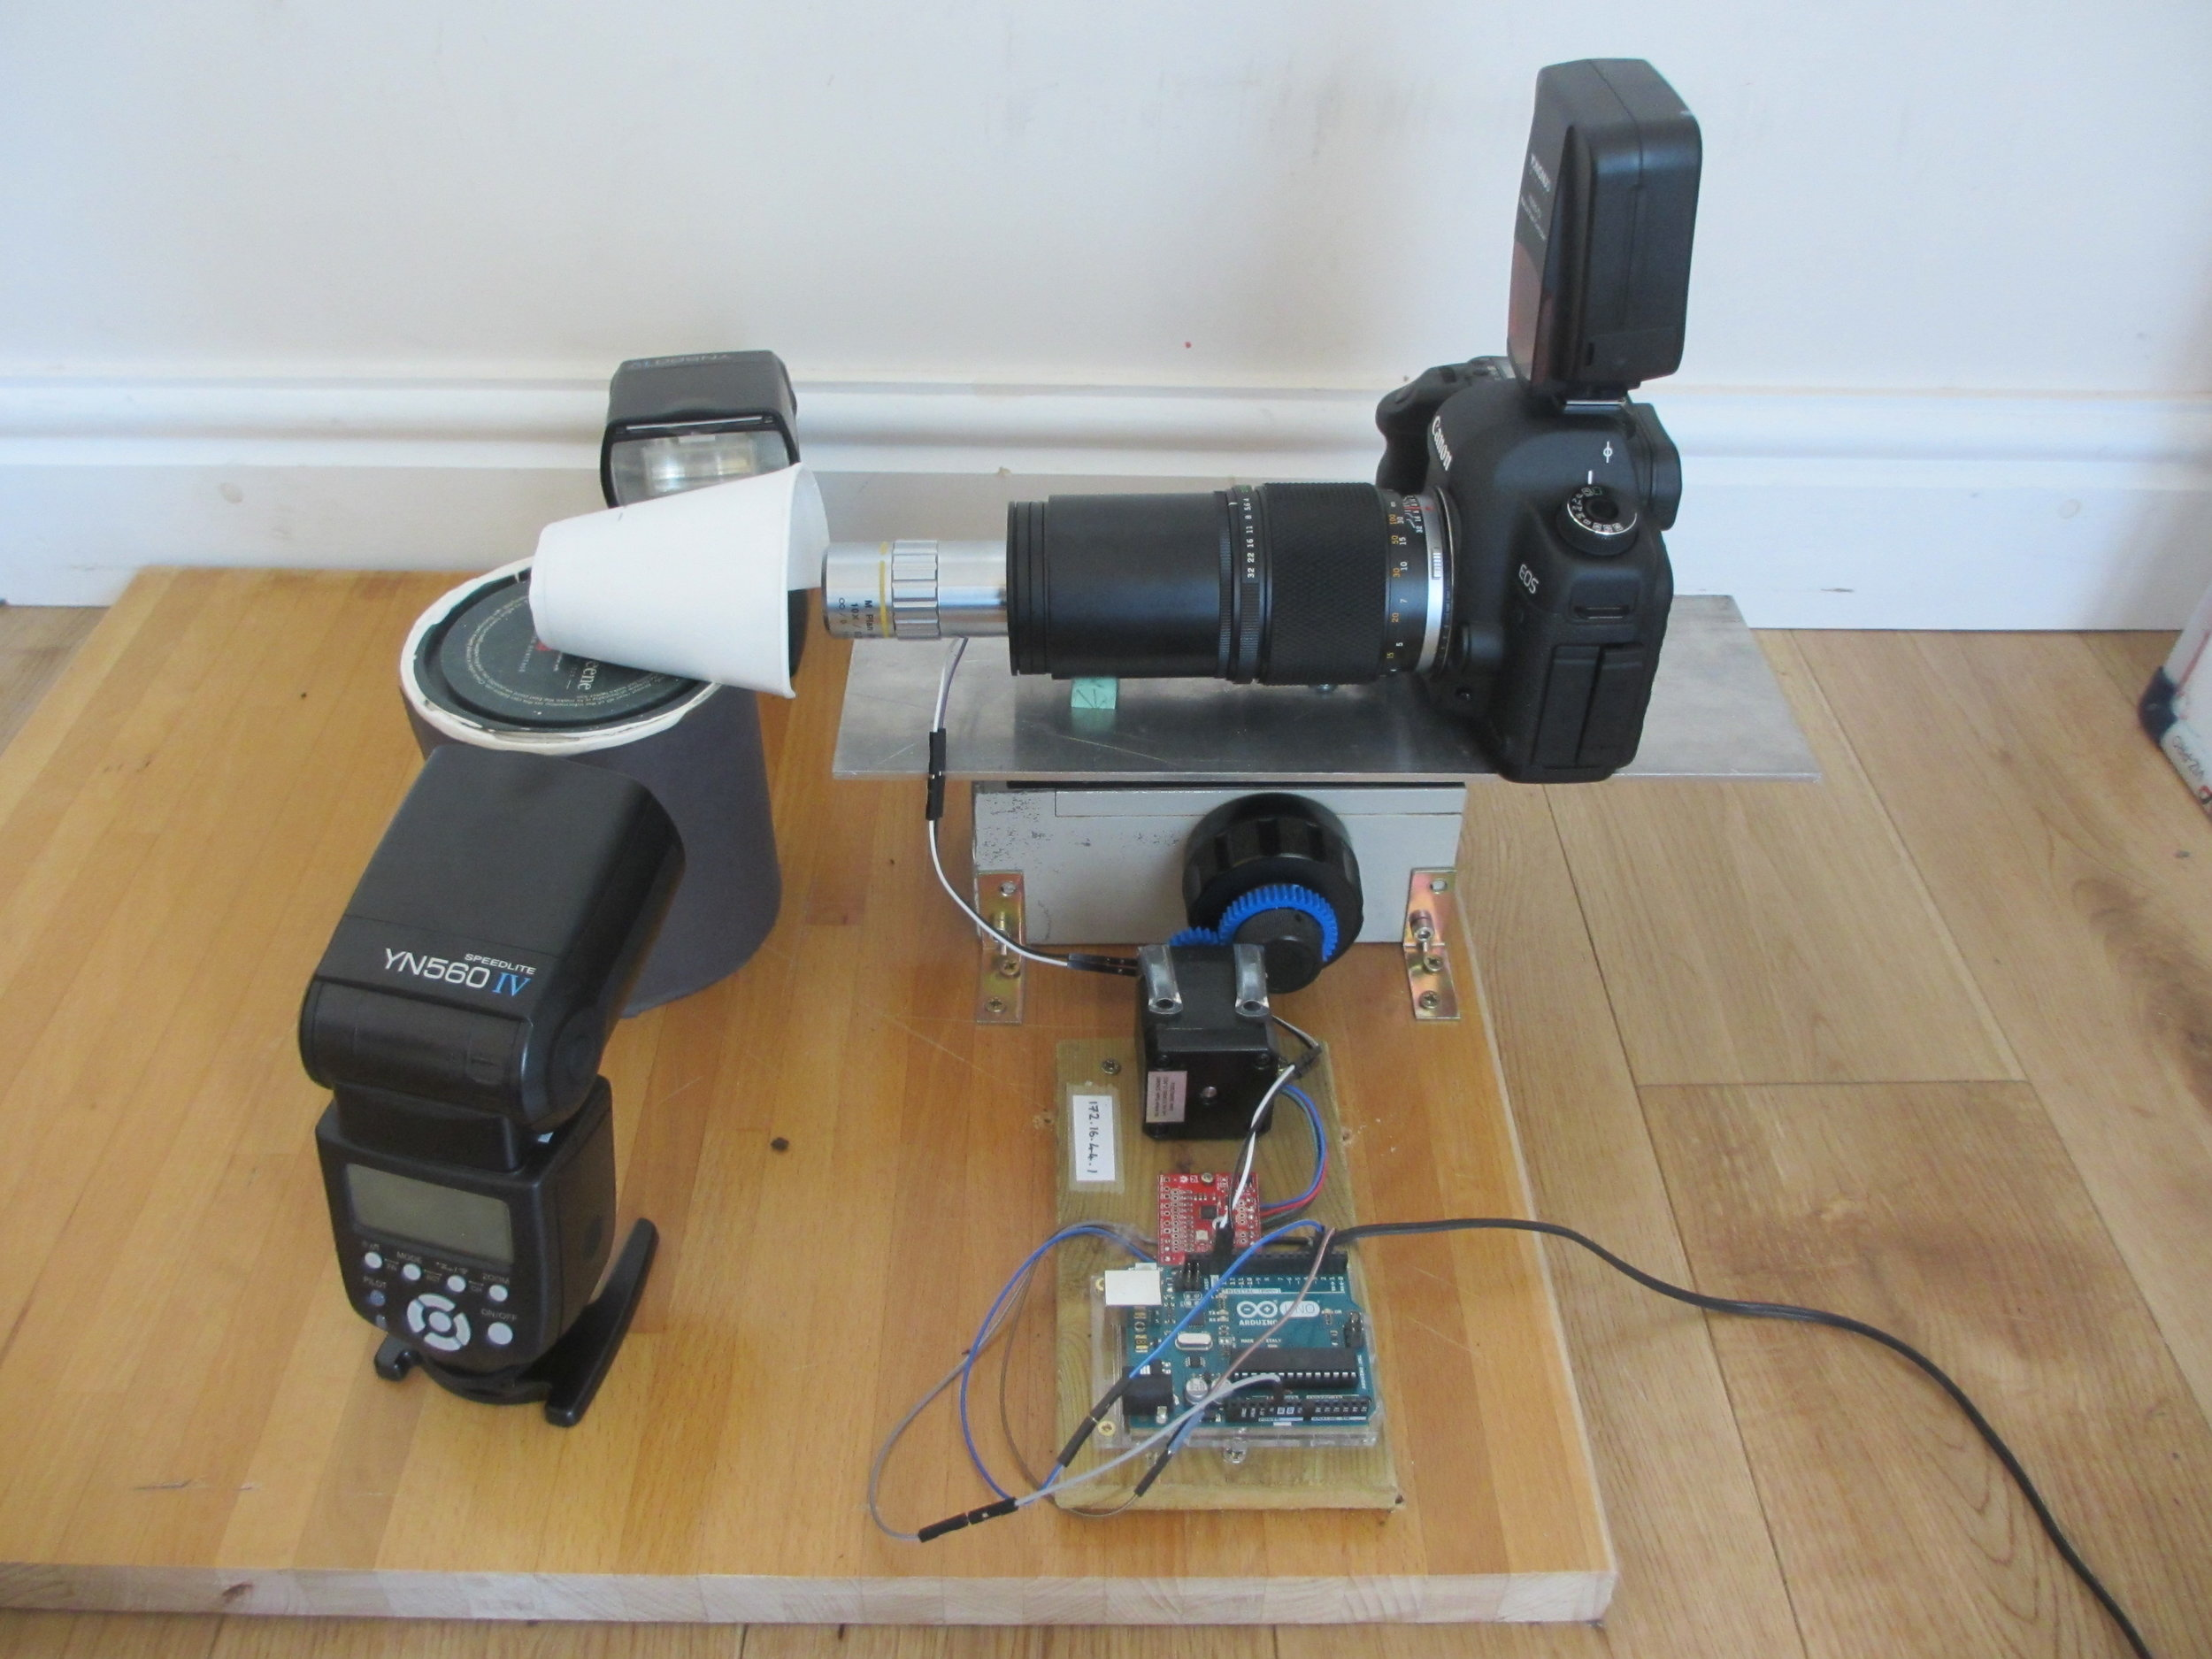 The DIY Focus stacking photography system